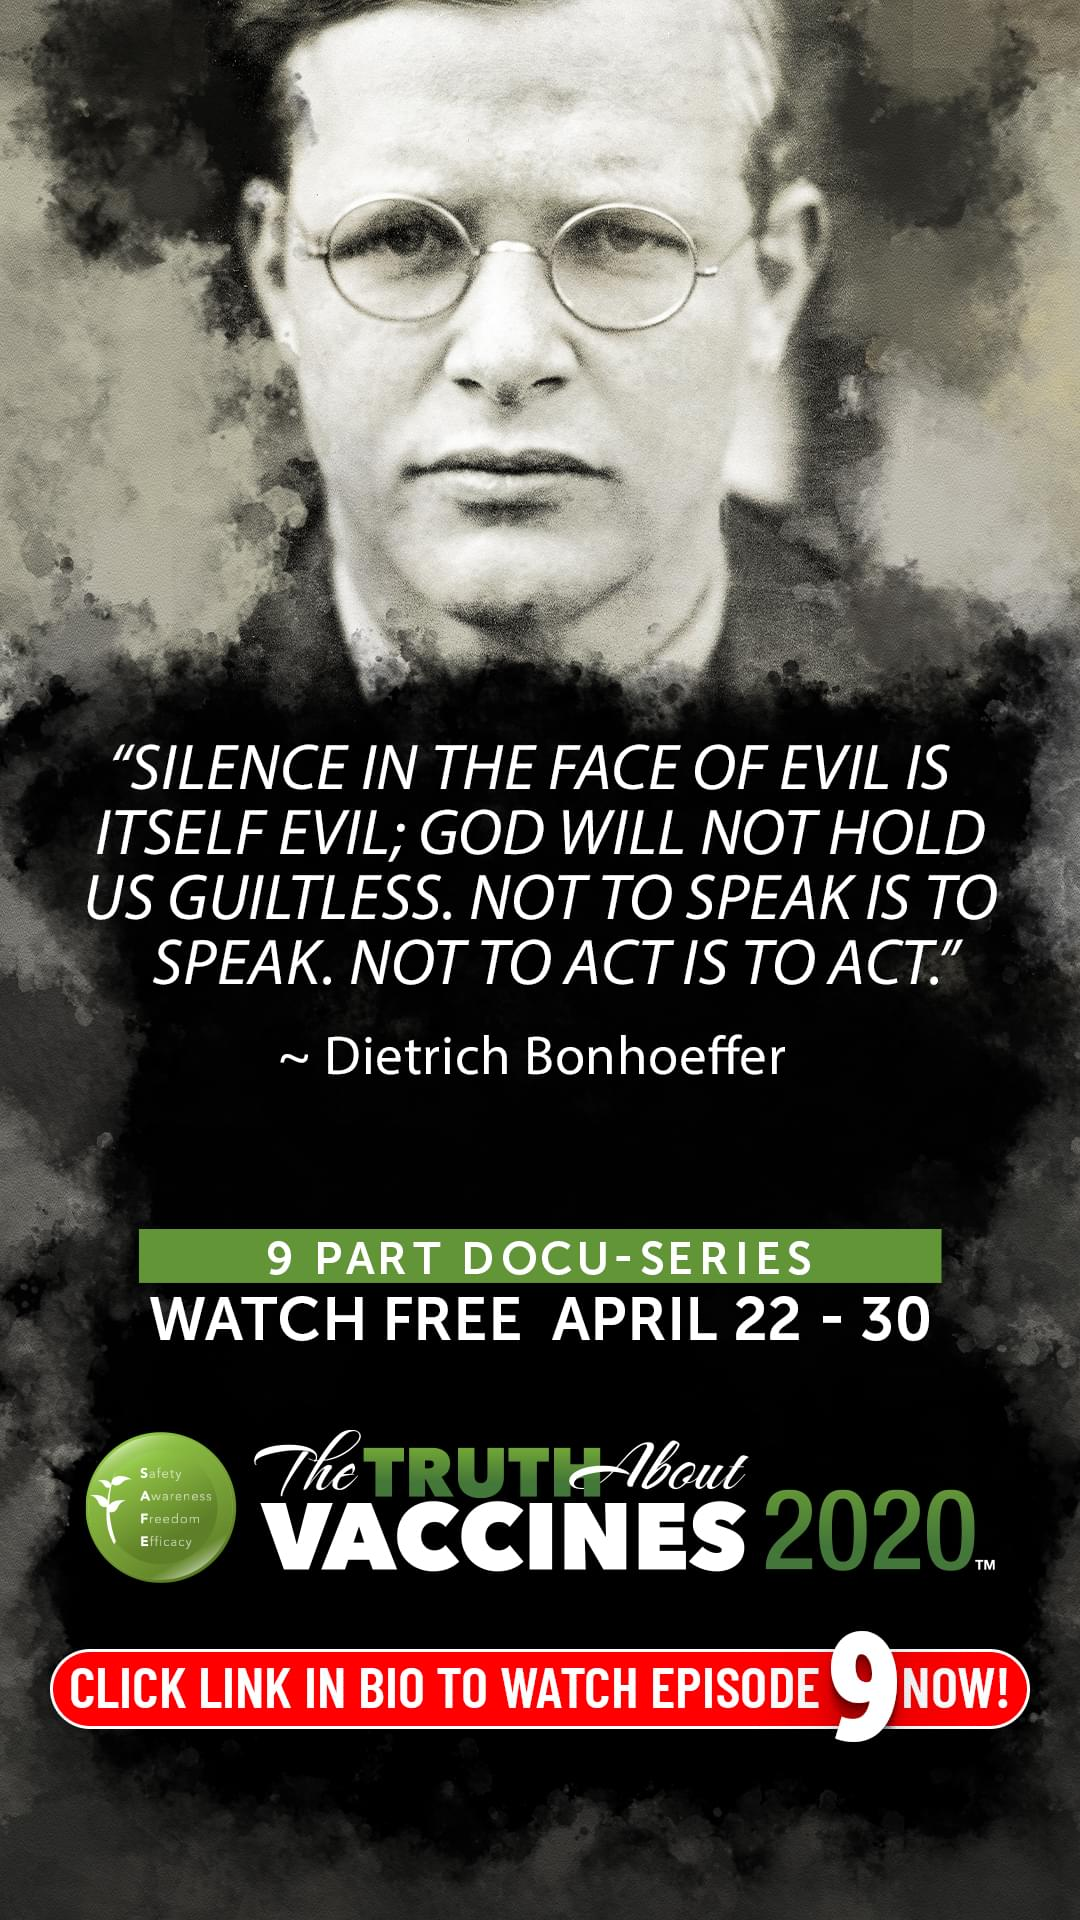 TTAV-ep09-Video_Quotes-Dietrich_Bonhoeffer-IG-1080X1920-min